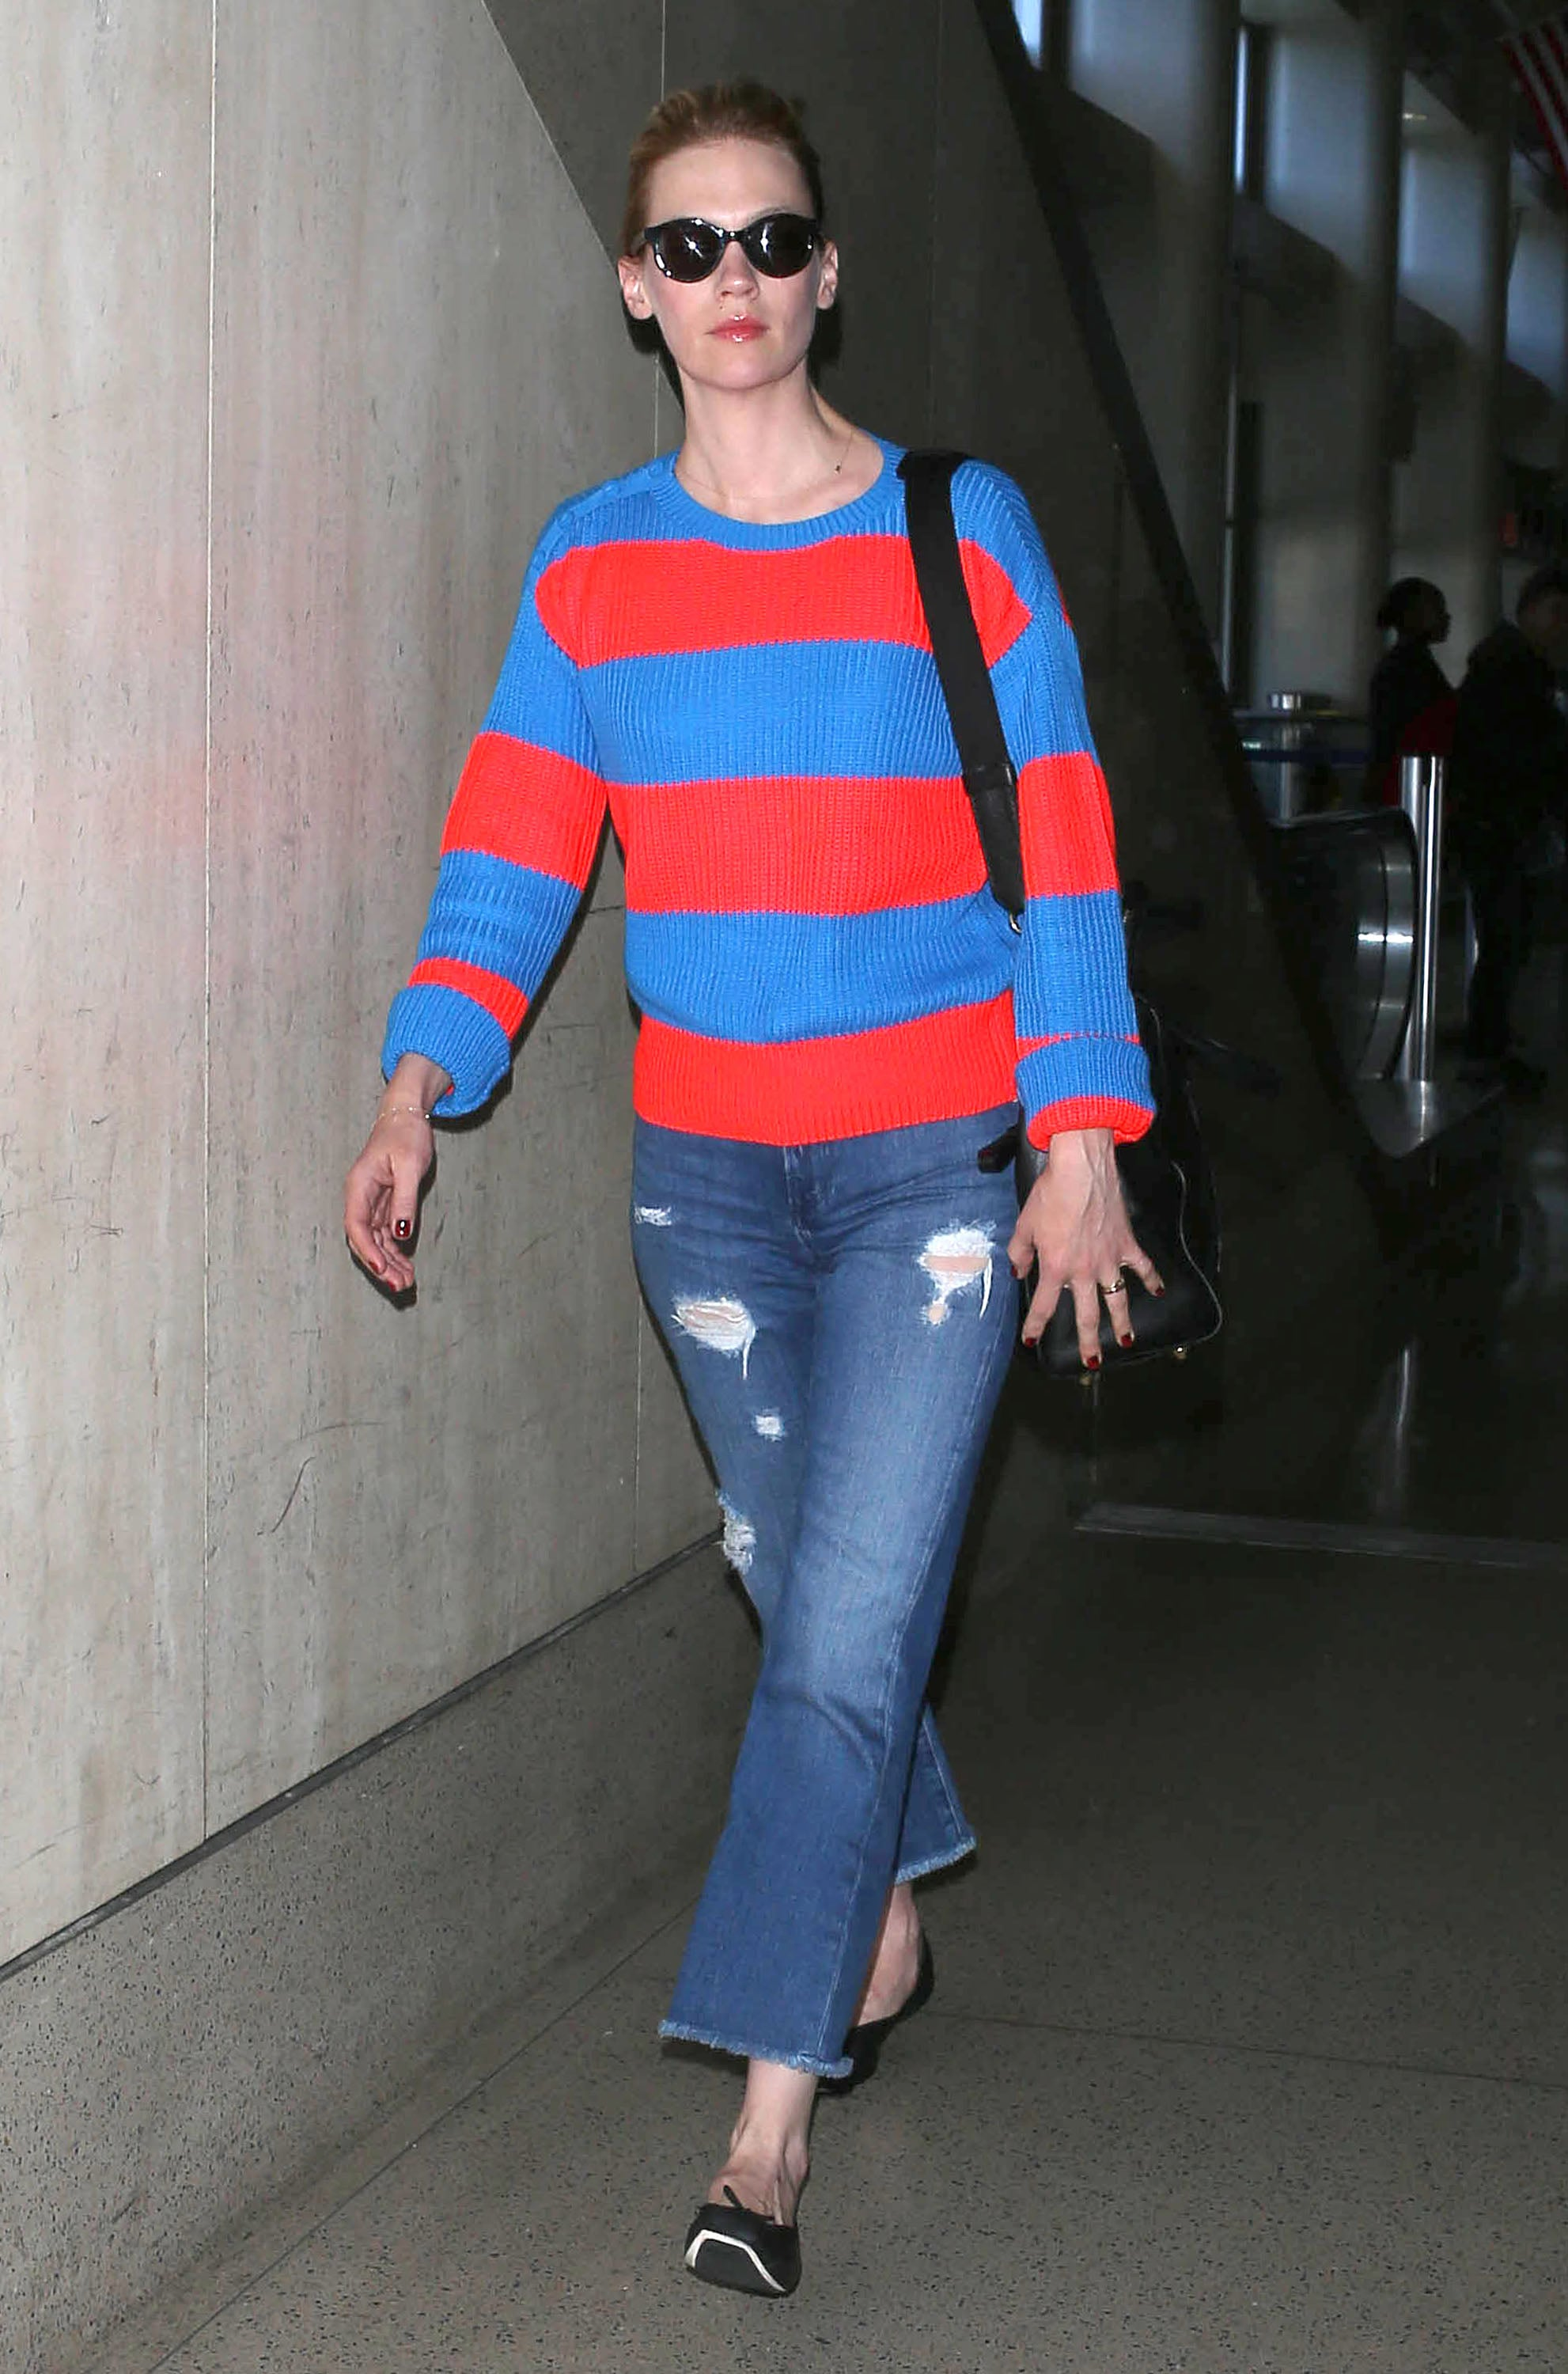 You don't have to be traveling to re-create January Jones's airport look. Just find a bold red-and-blue striped top, then add distressed denim for a cool finish.